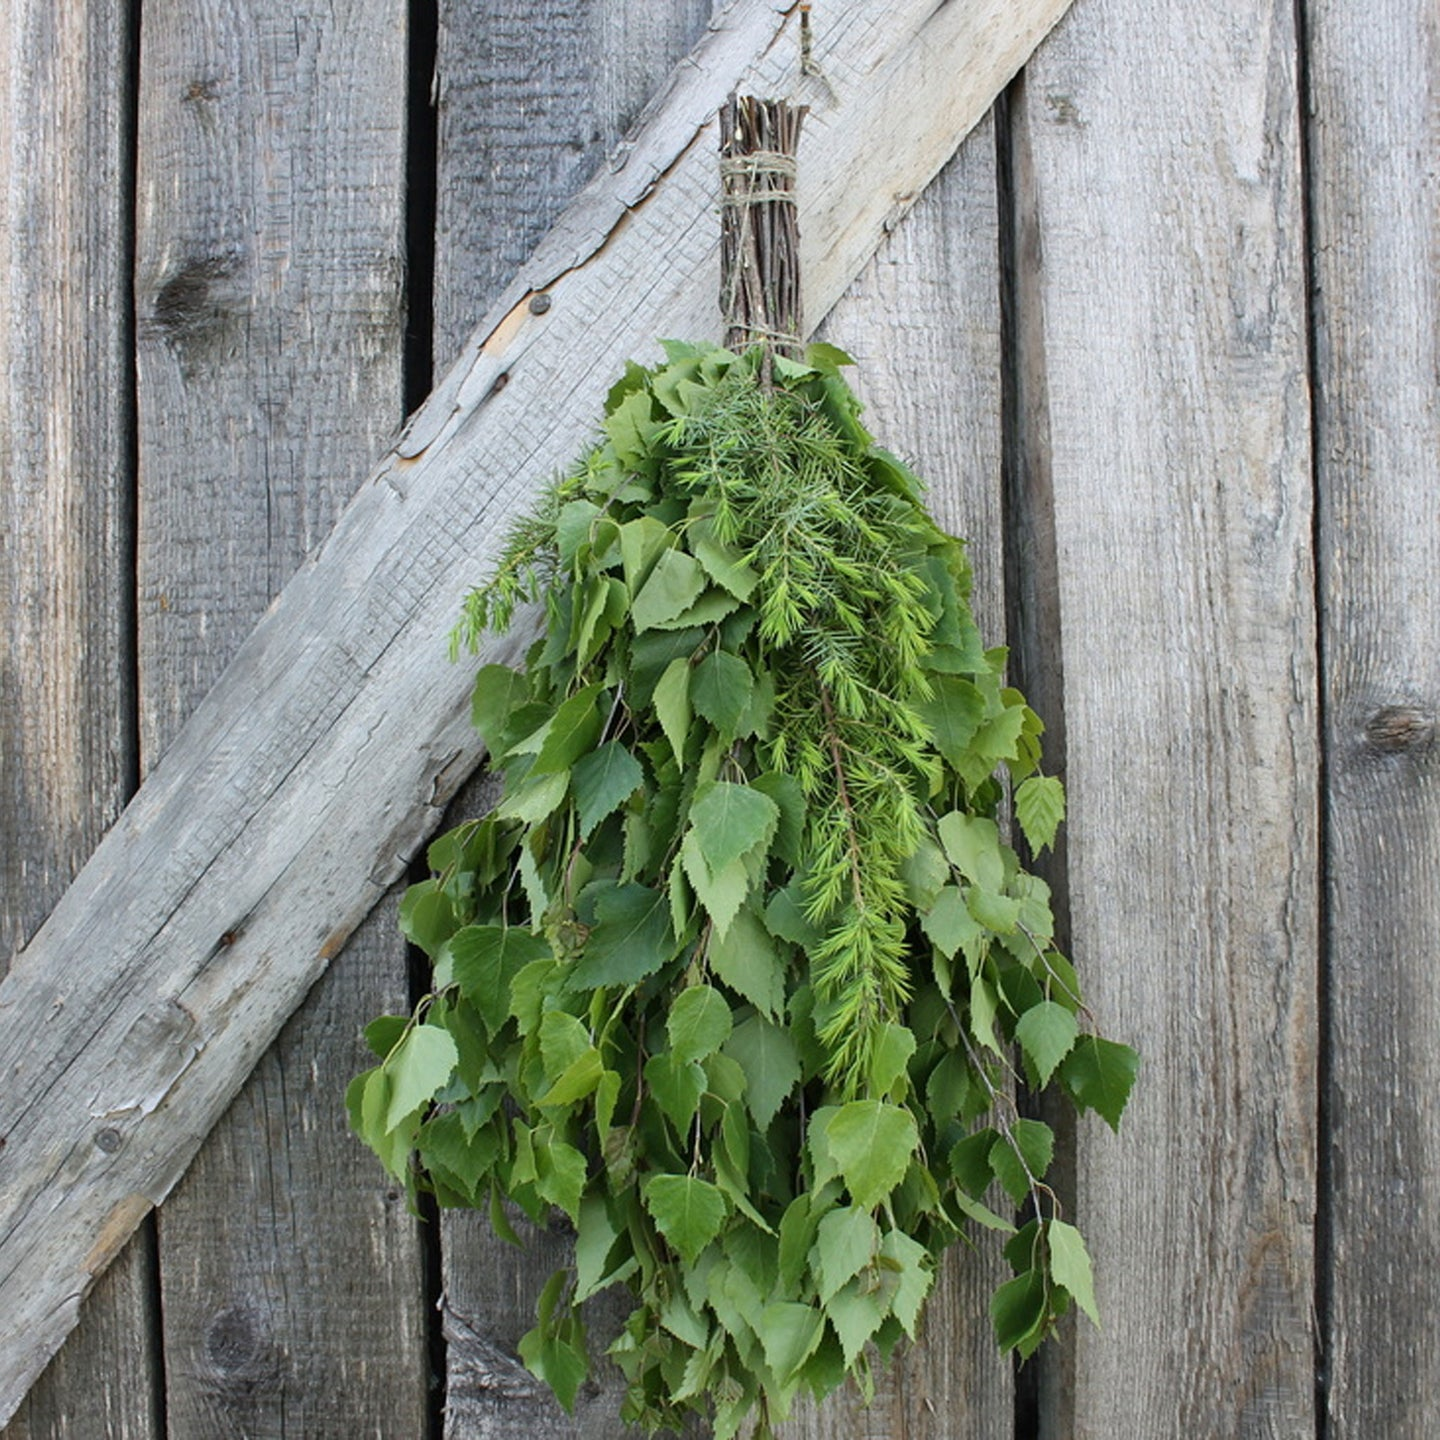 Dried Hand Made Sauna Whisk / Sauna Vihta - Birch & Juniper  Sauna Whisks / Sauna Vihta Finnmark Sauna